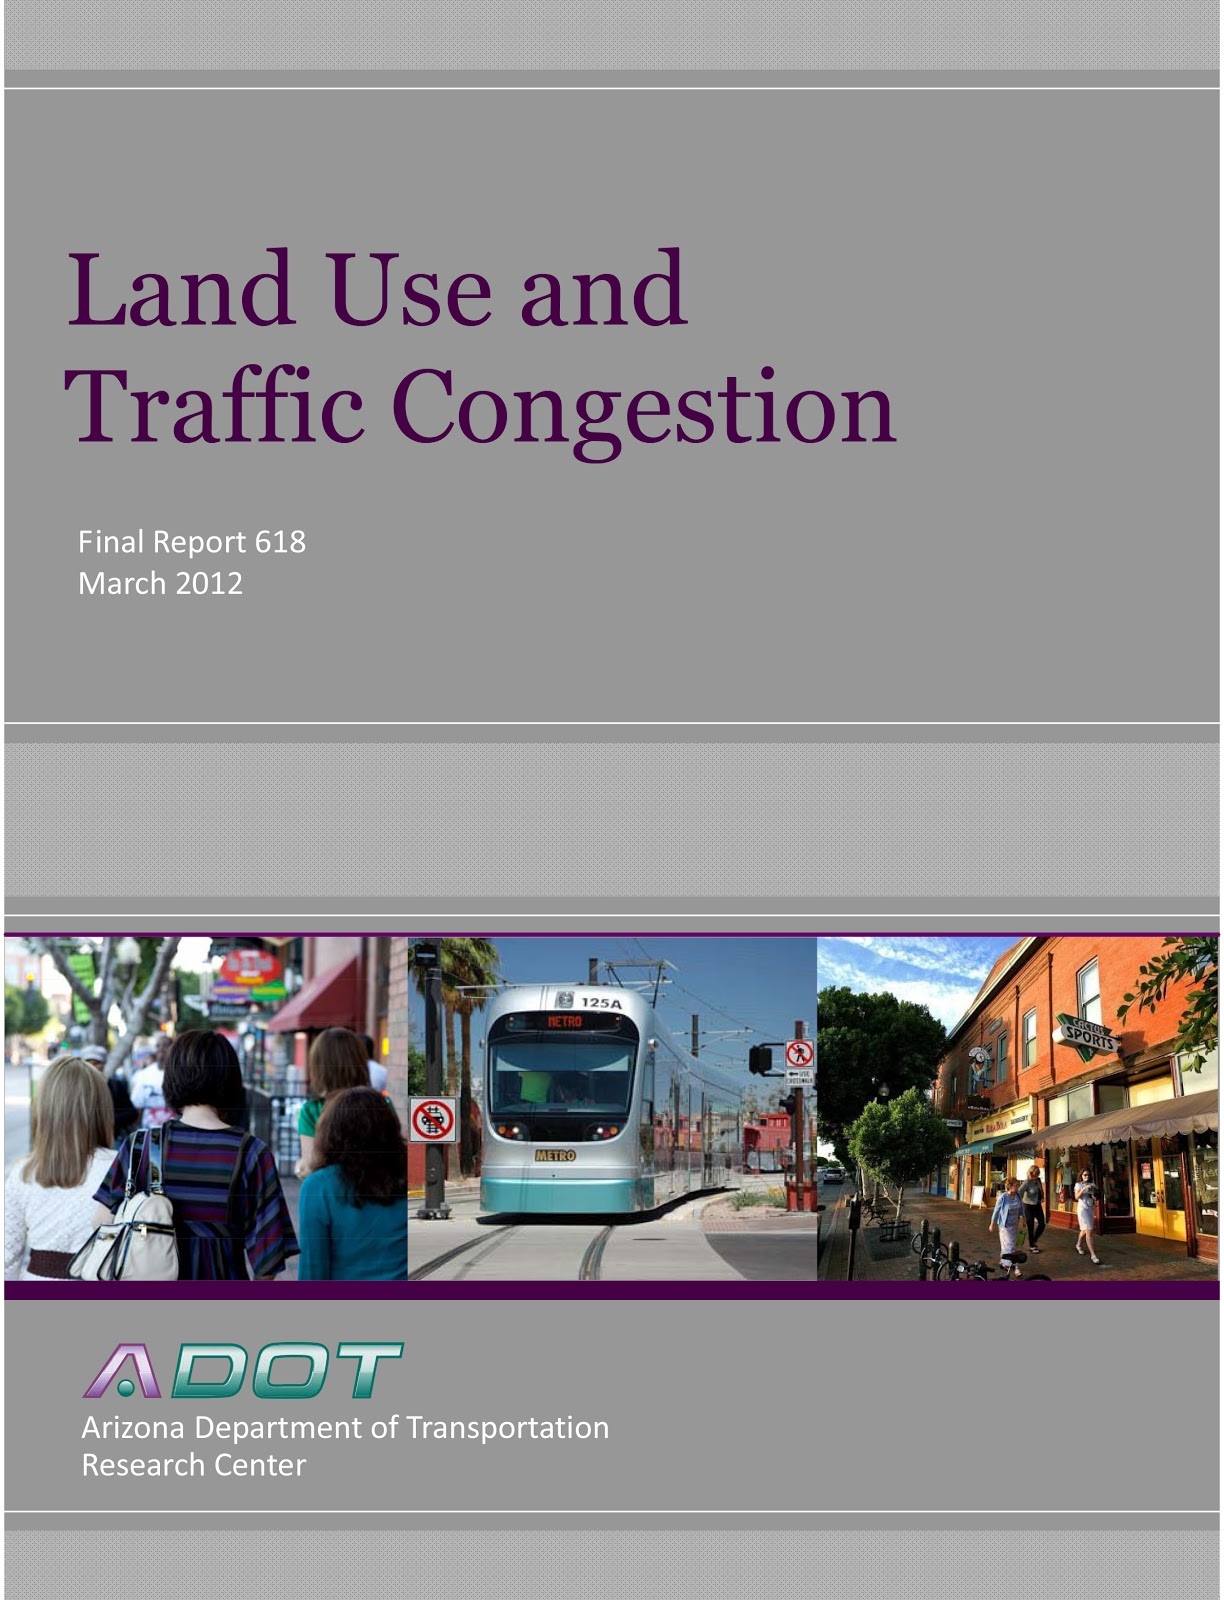 Land Use and Traffic Congestion Study Cover